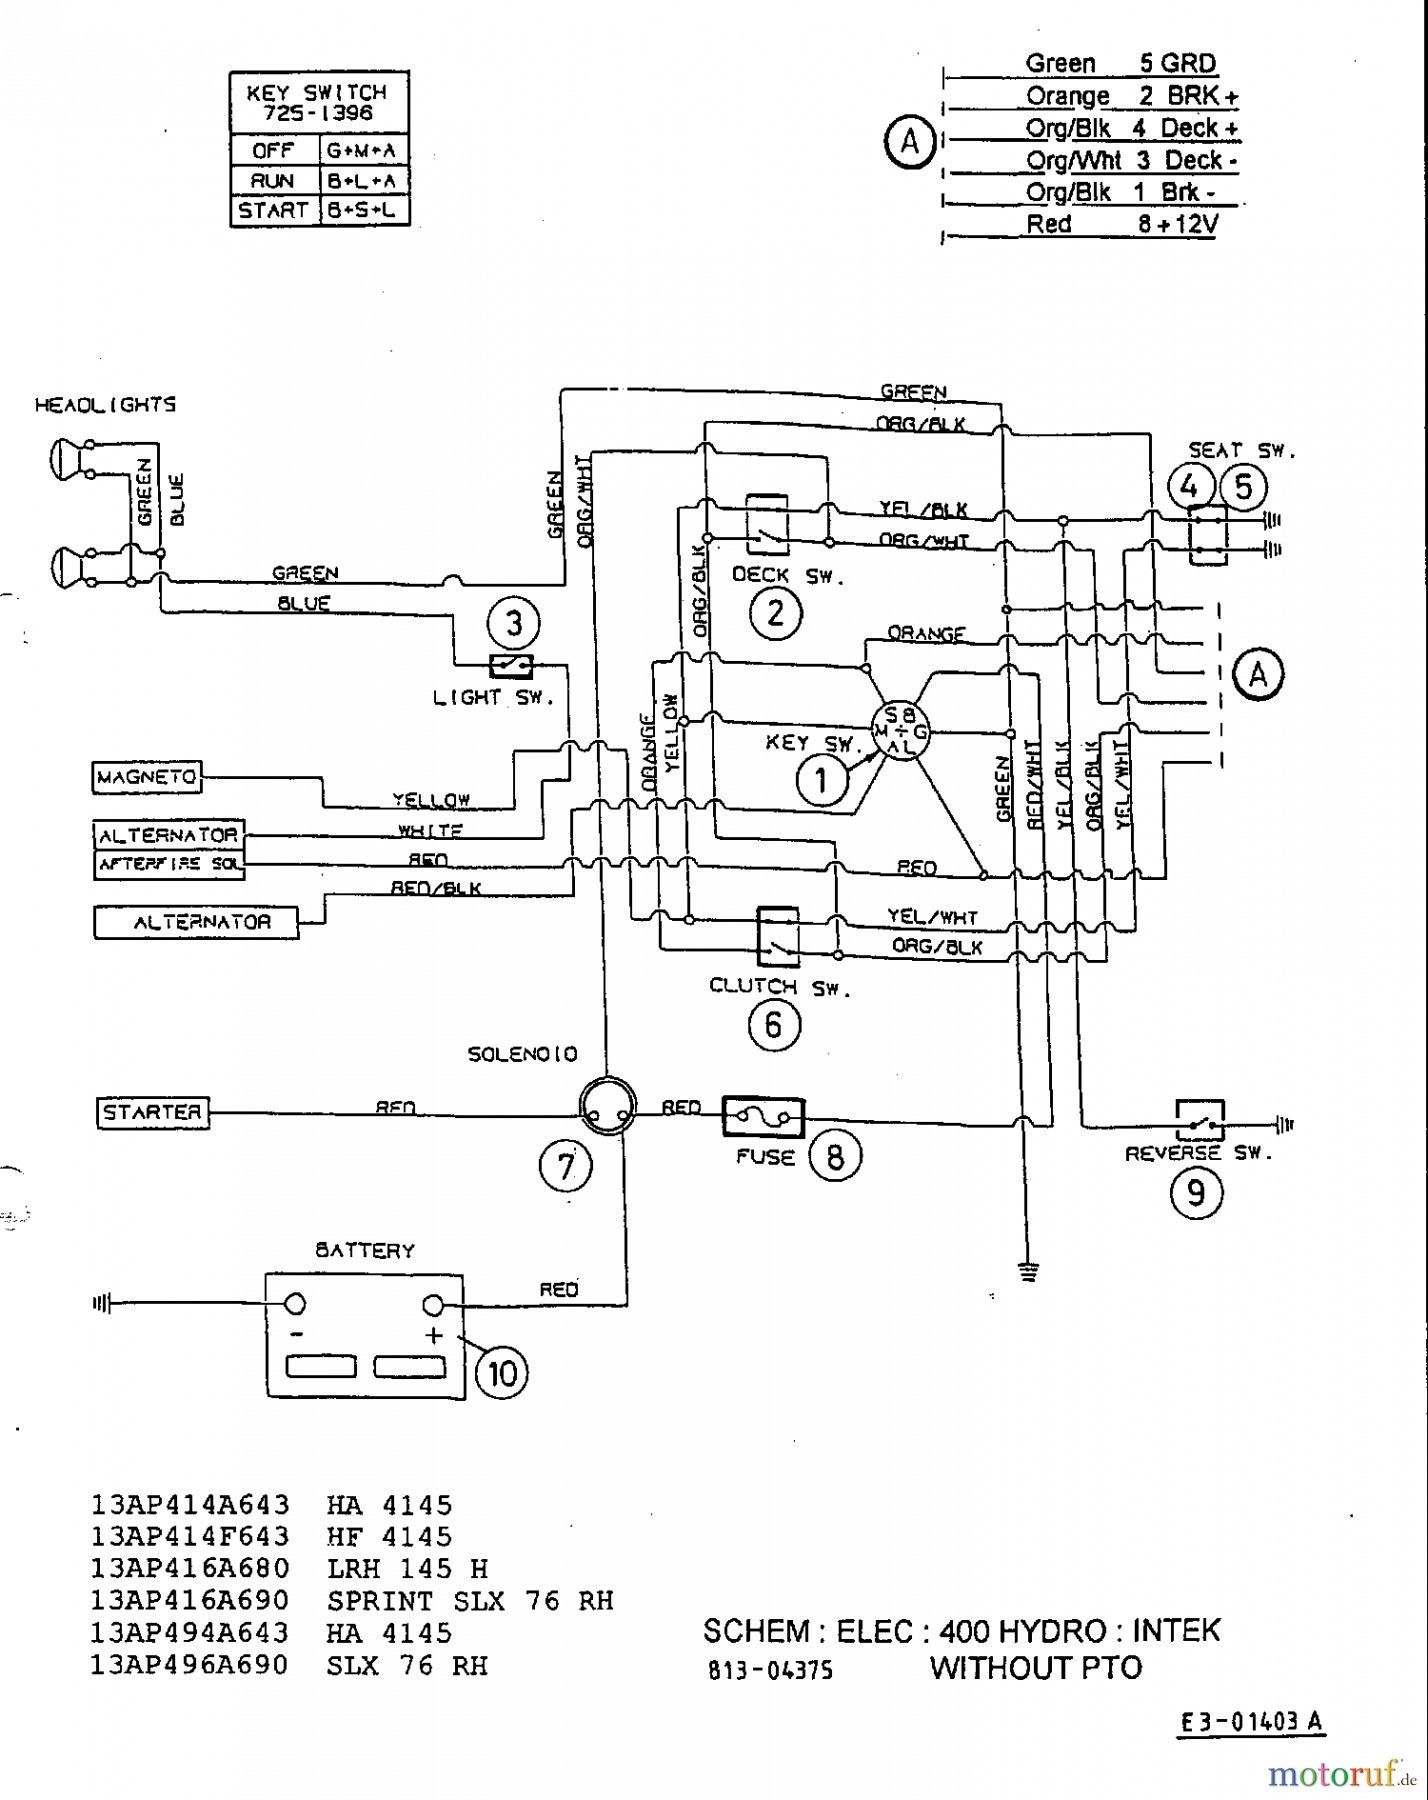 hight resolution of wiring diagram for riding lawn mower wiring diagram schematic columbia lawn tractor wiring diagram lawn tractor wiring diagram